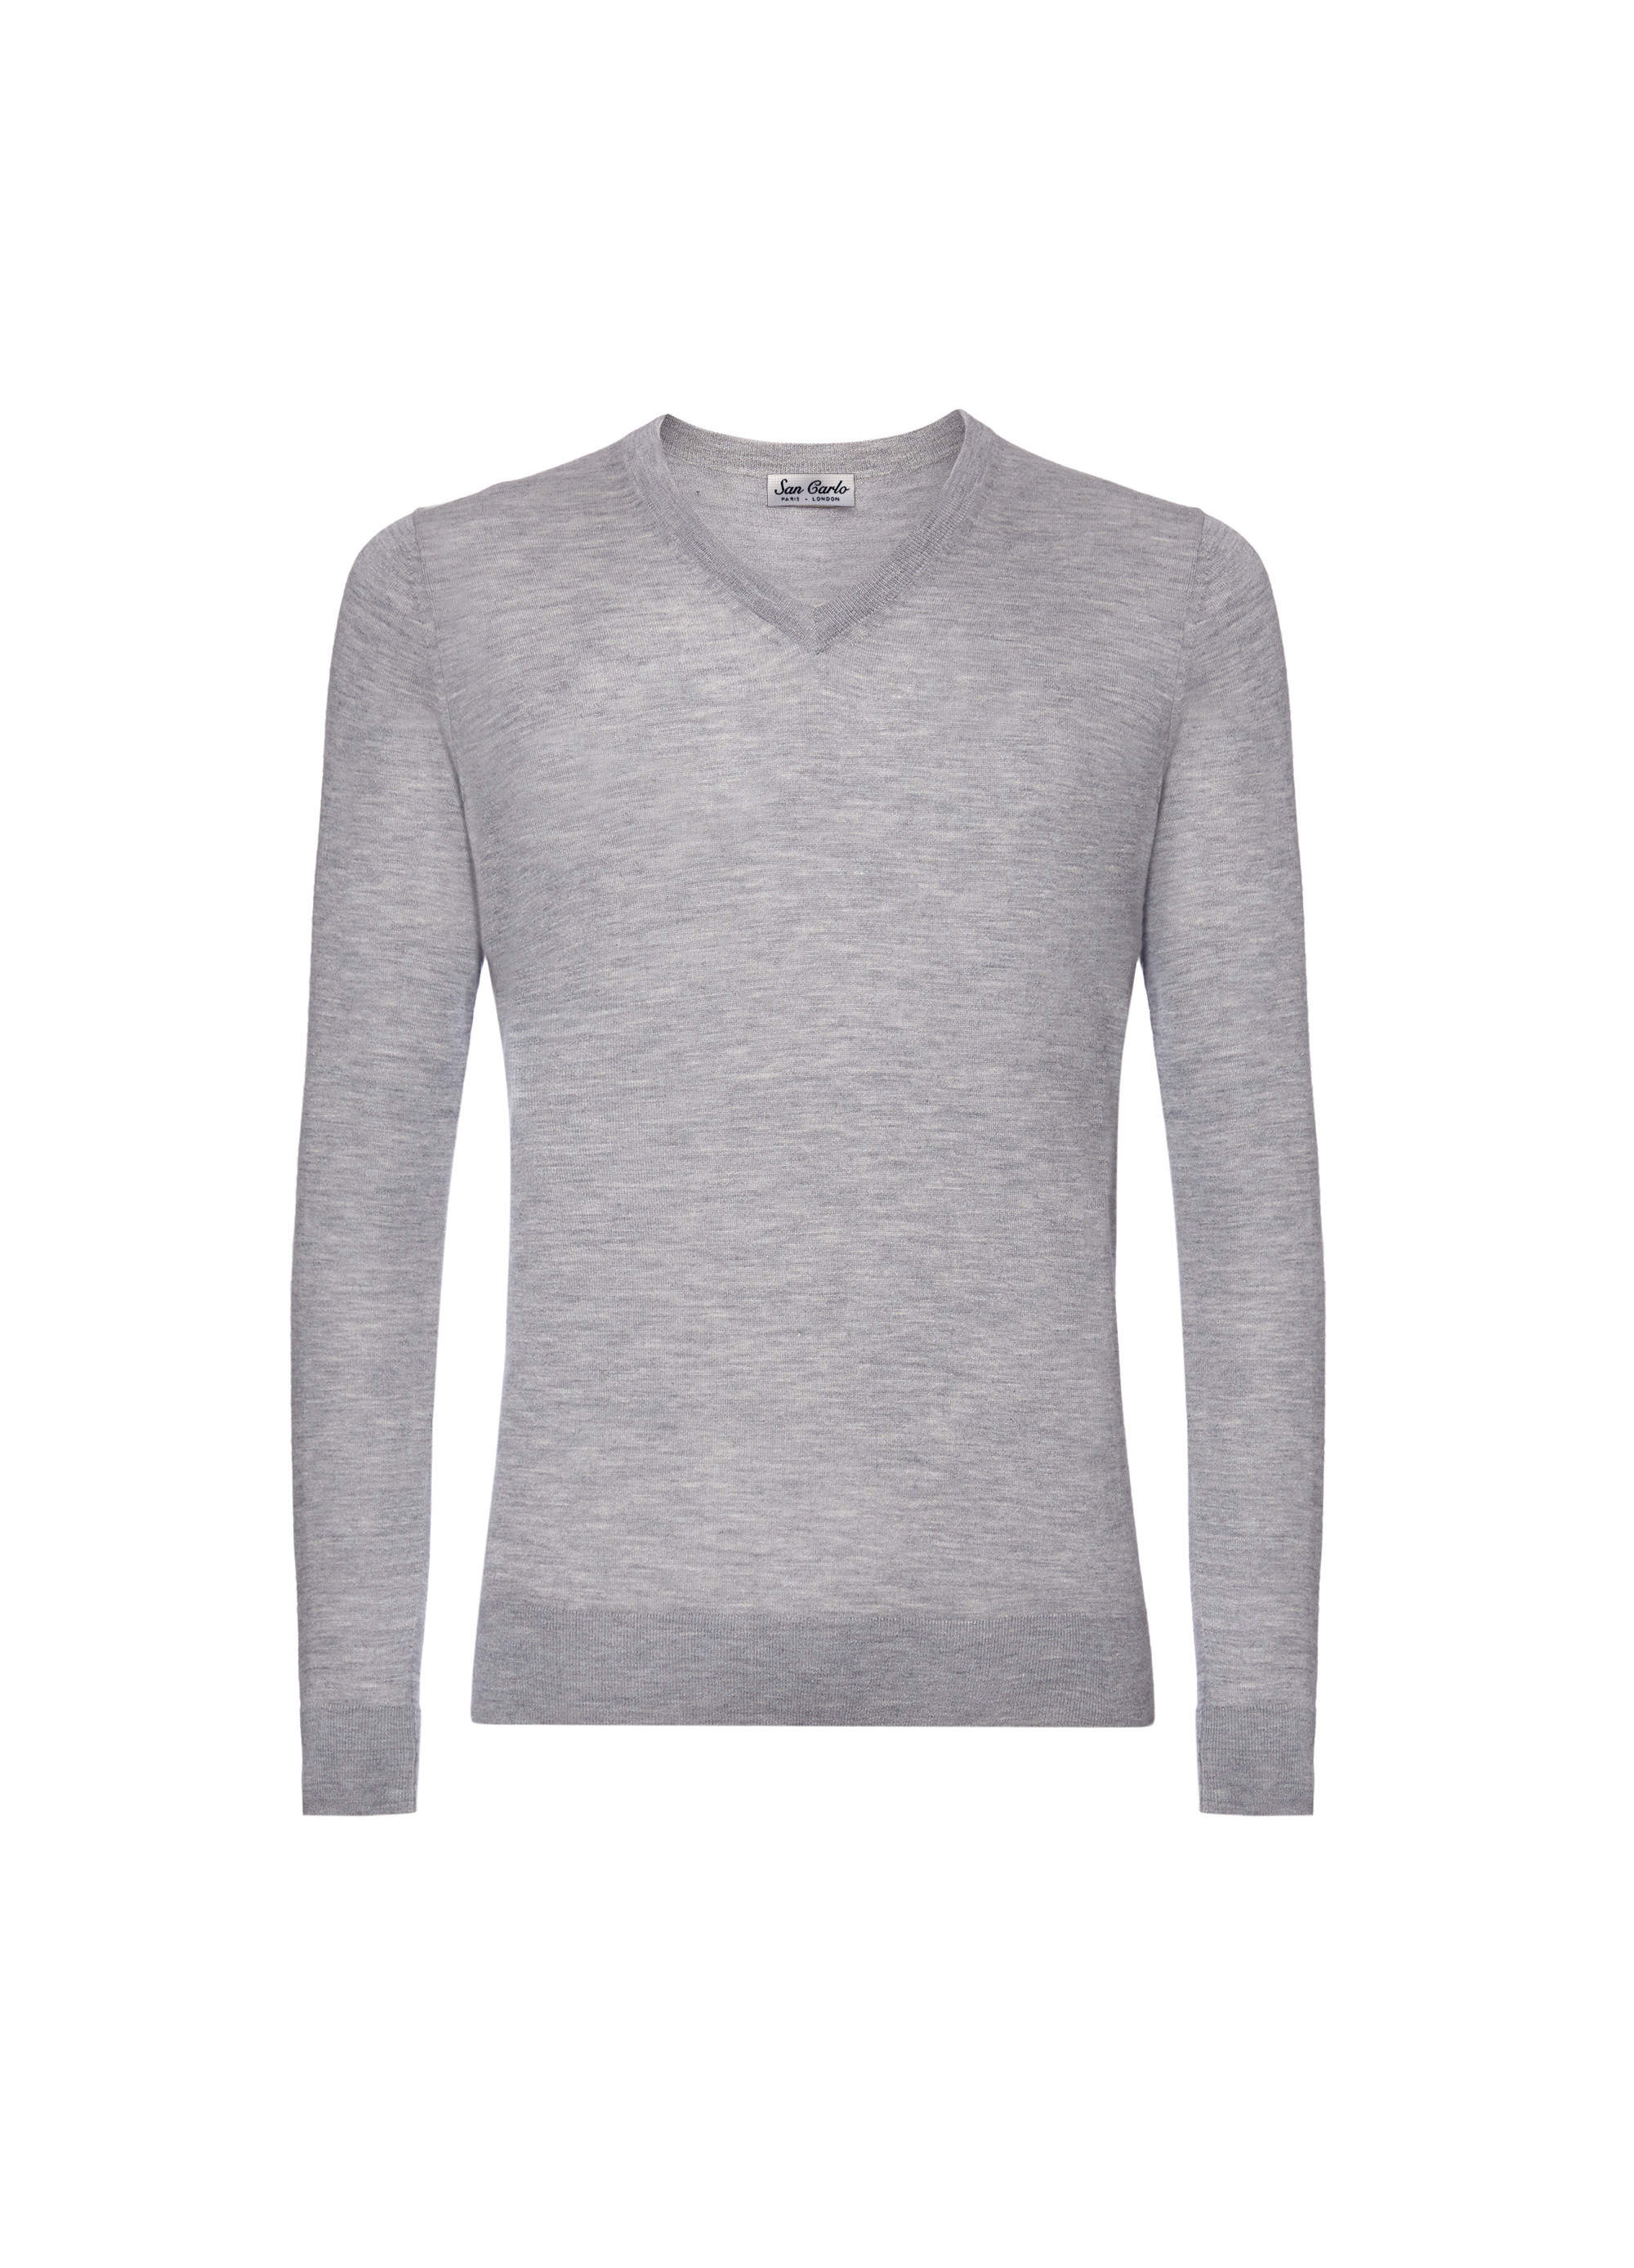 v-neck silk & cashmere light grey 02.jpg